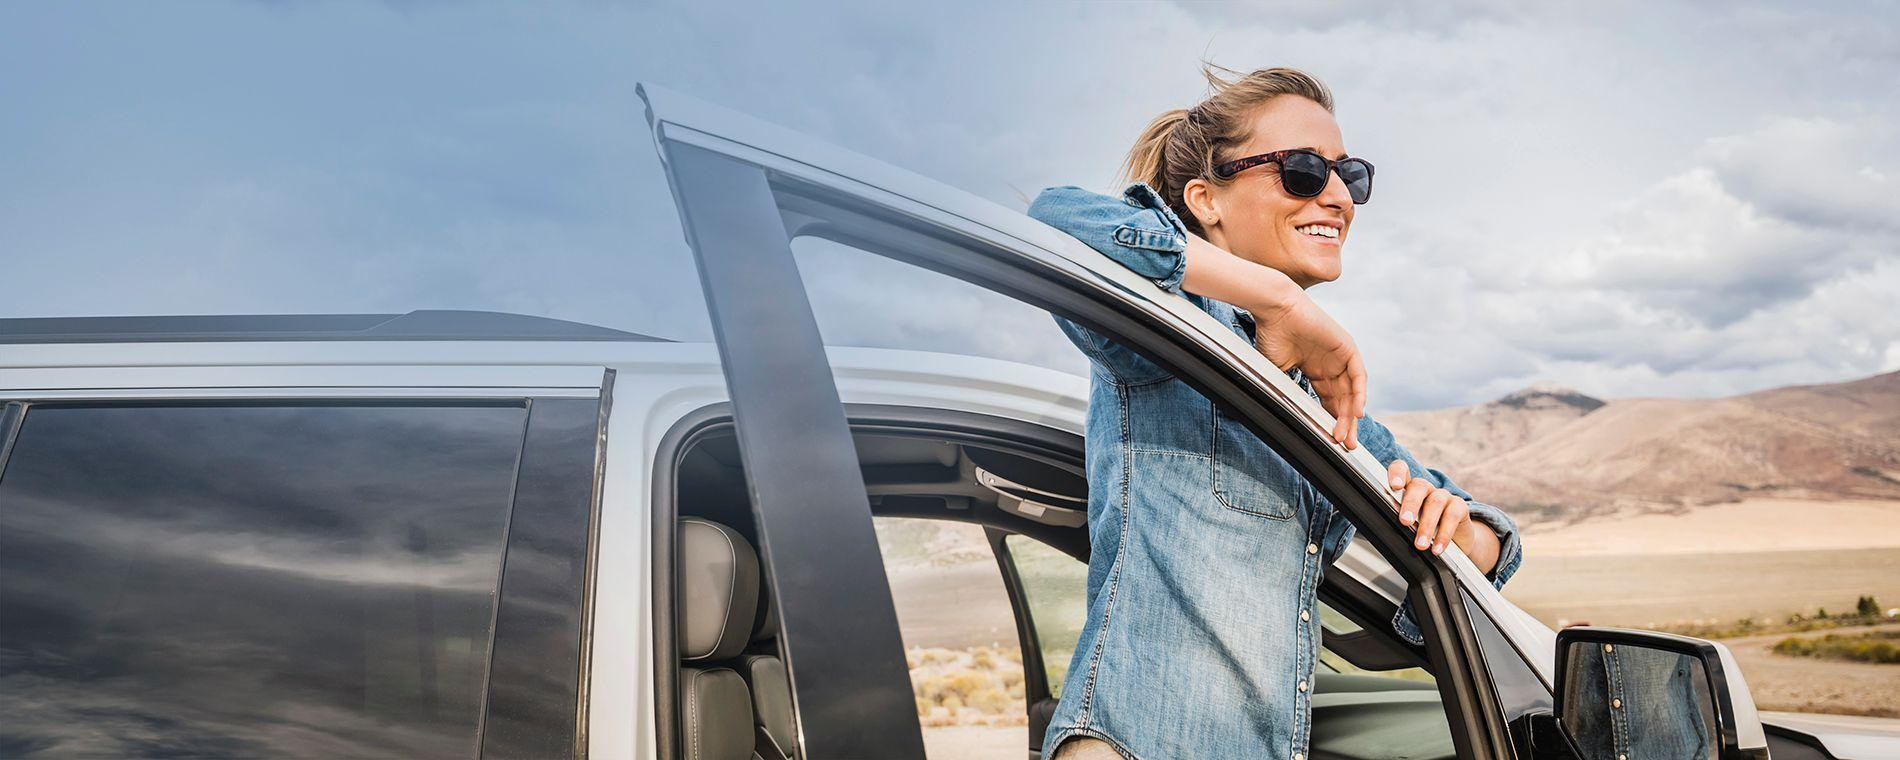 Smiling woman in blue shirt leaning on car door as she looks out over the beach.